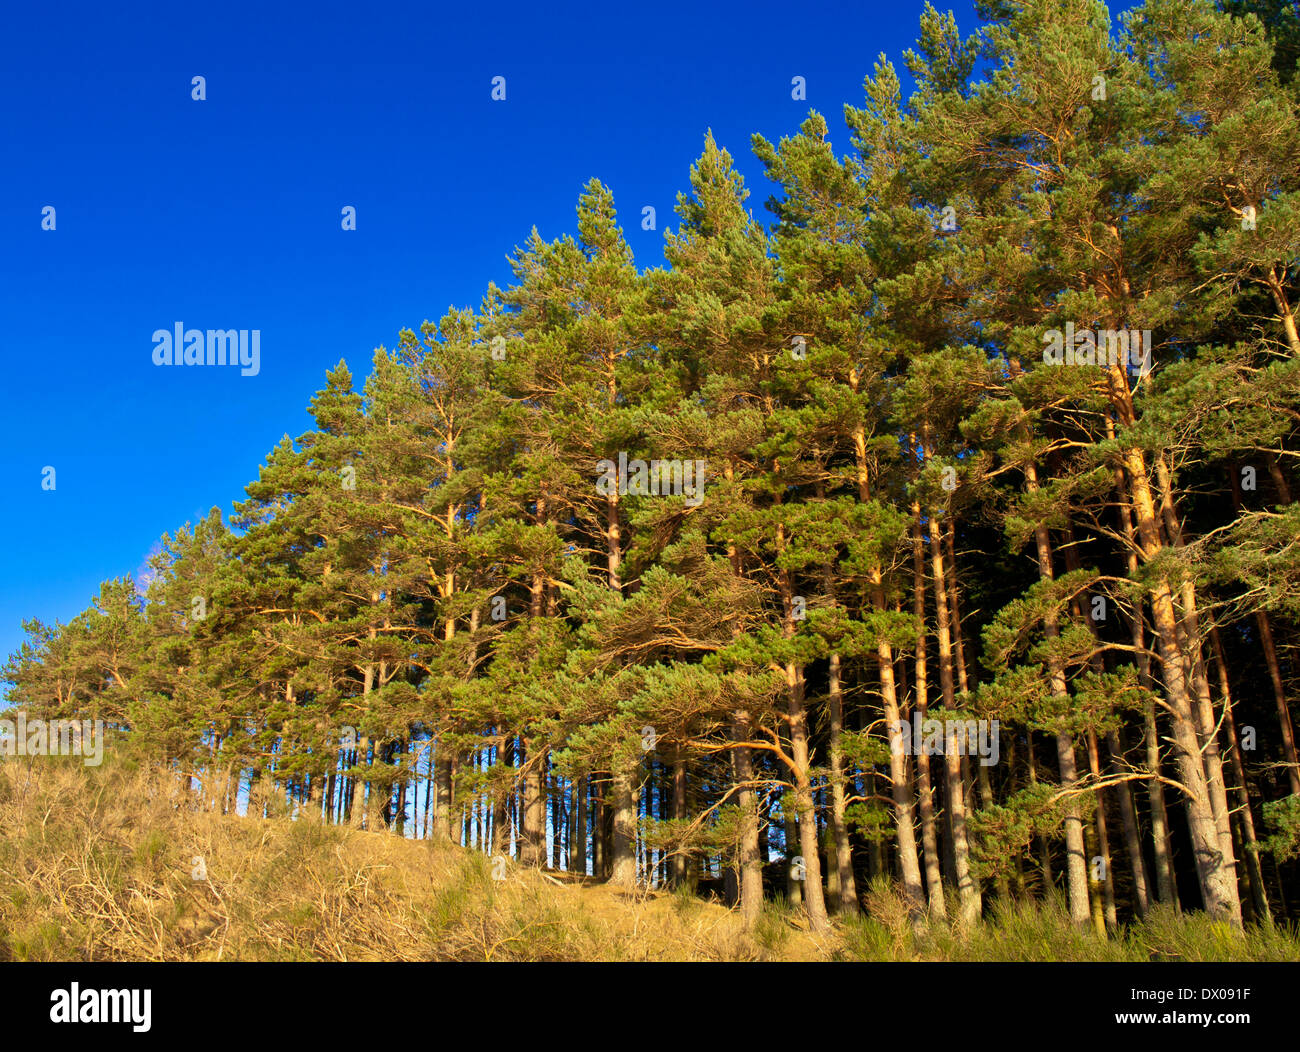 Pine plantation on hillside by Loch Pityoulish angled against deep blue sky, near Aviemore, Cairngorms National Park Scotland UK - Stock Image